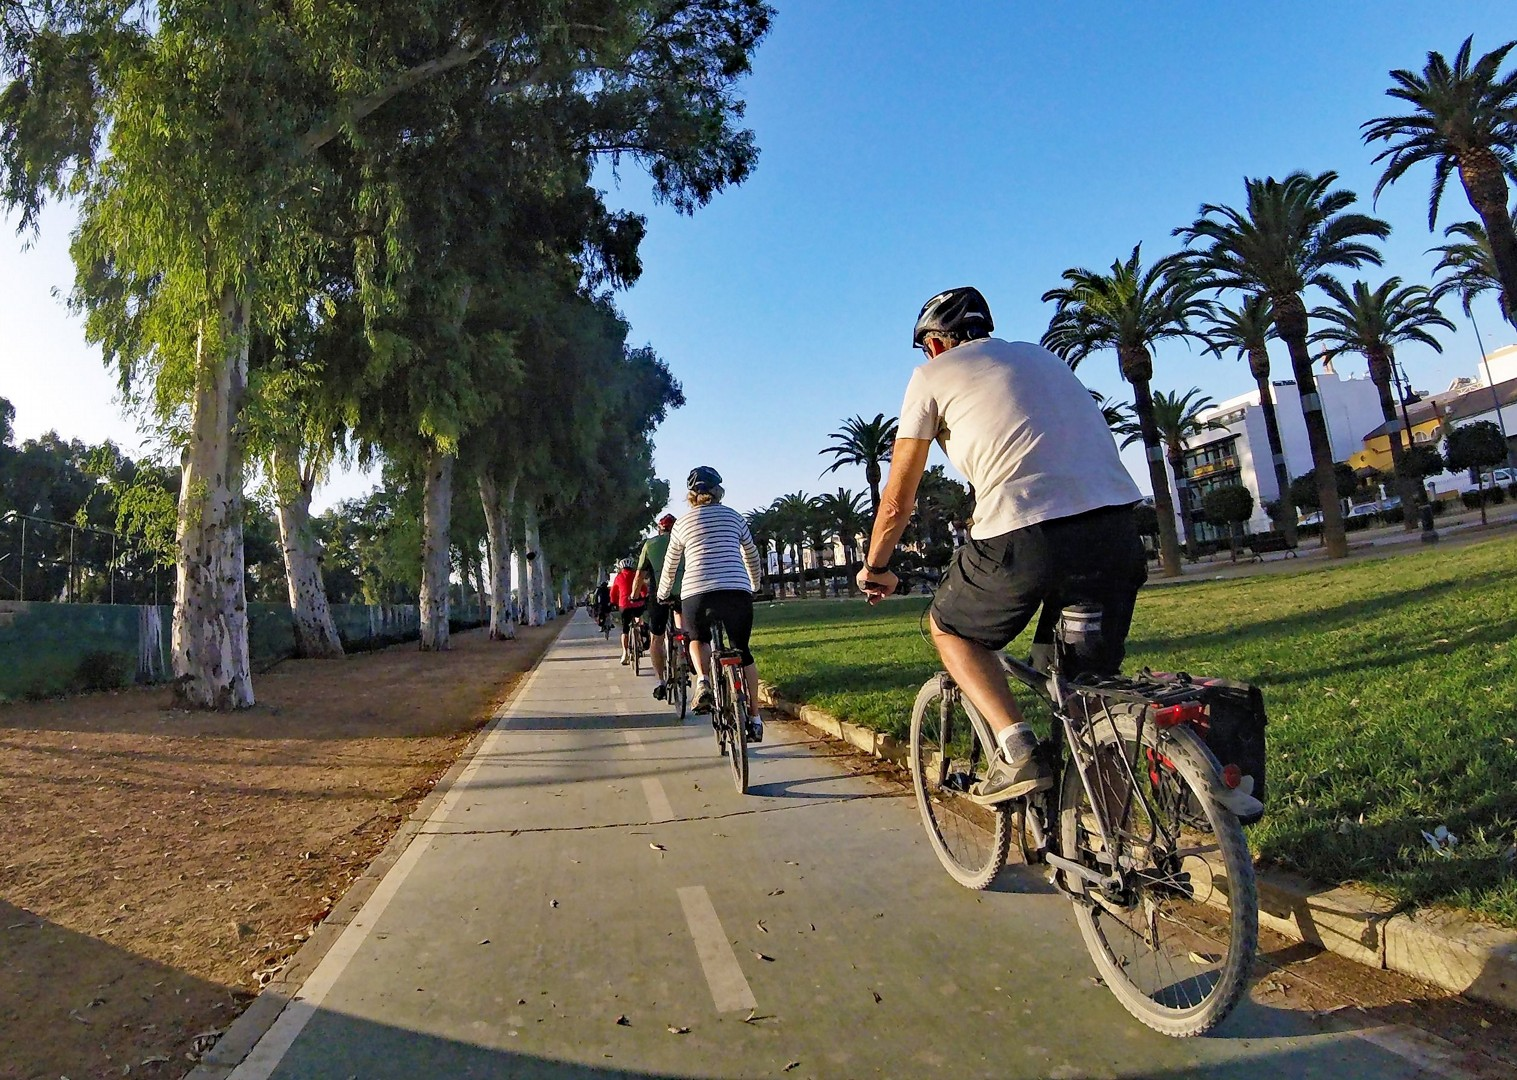 cycling-holiday-in-spain-granada-seville.jpg - Spain - Granada to Seville - Guided Leisure Cycling Holiday - Leisure Cycling